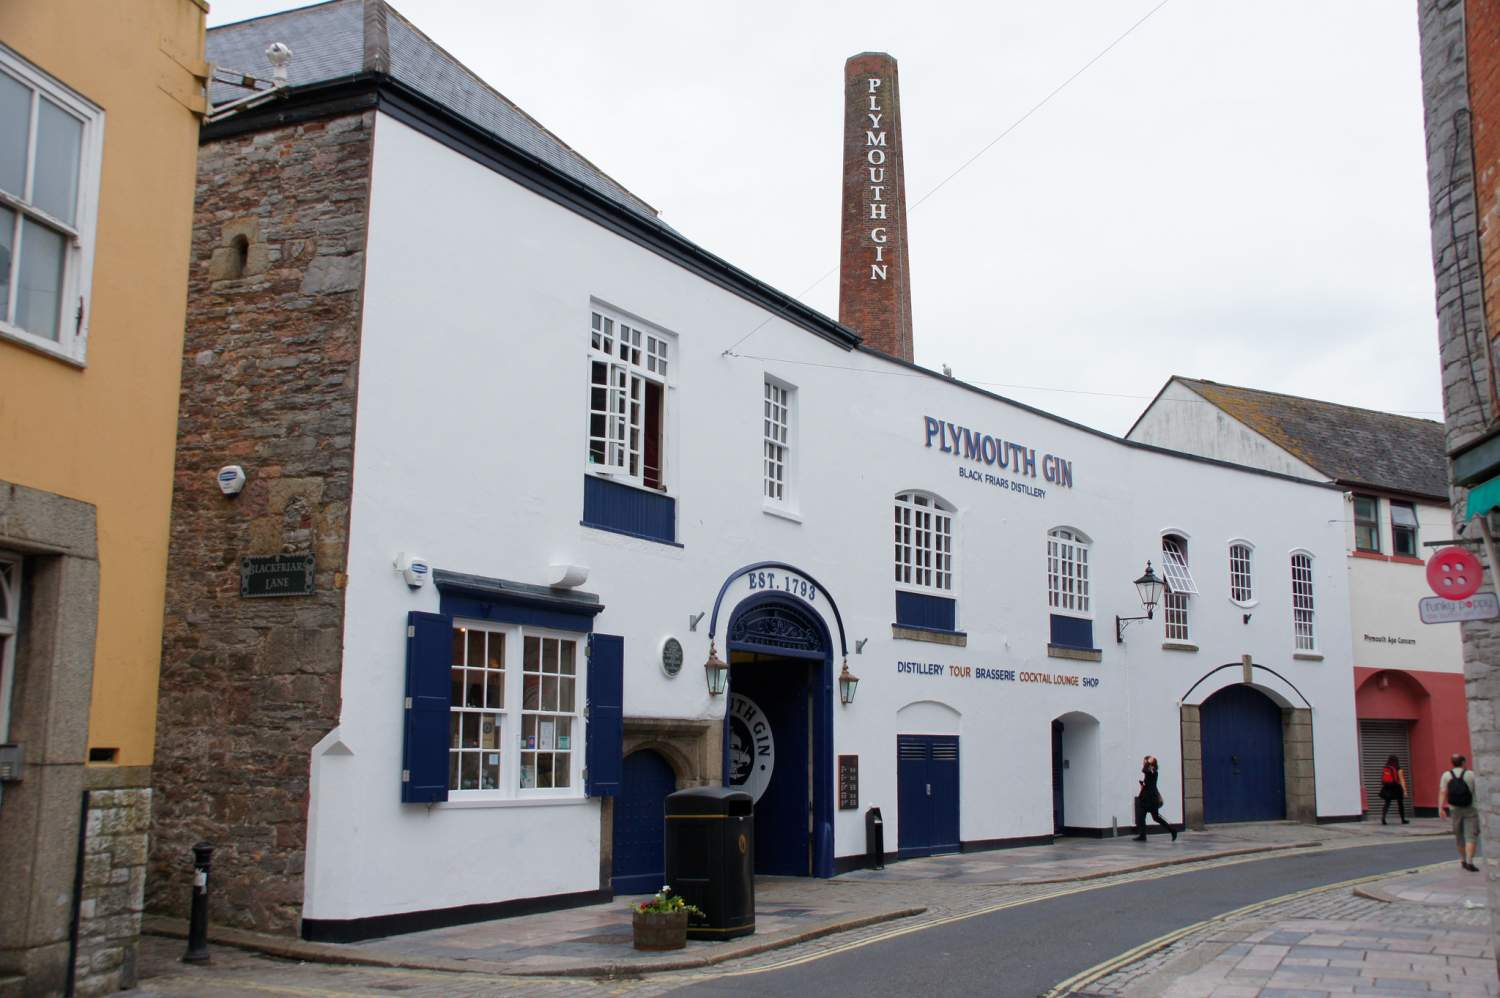 Plymouth gin distillery, London